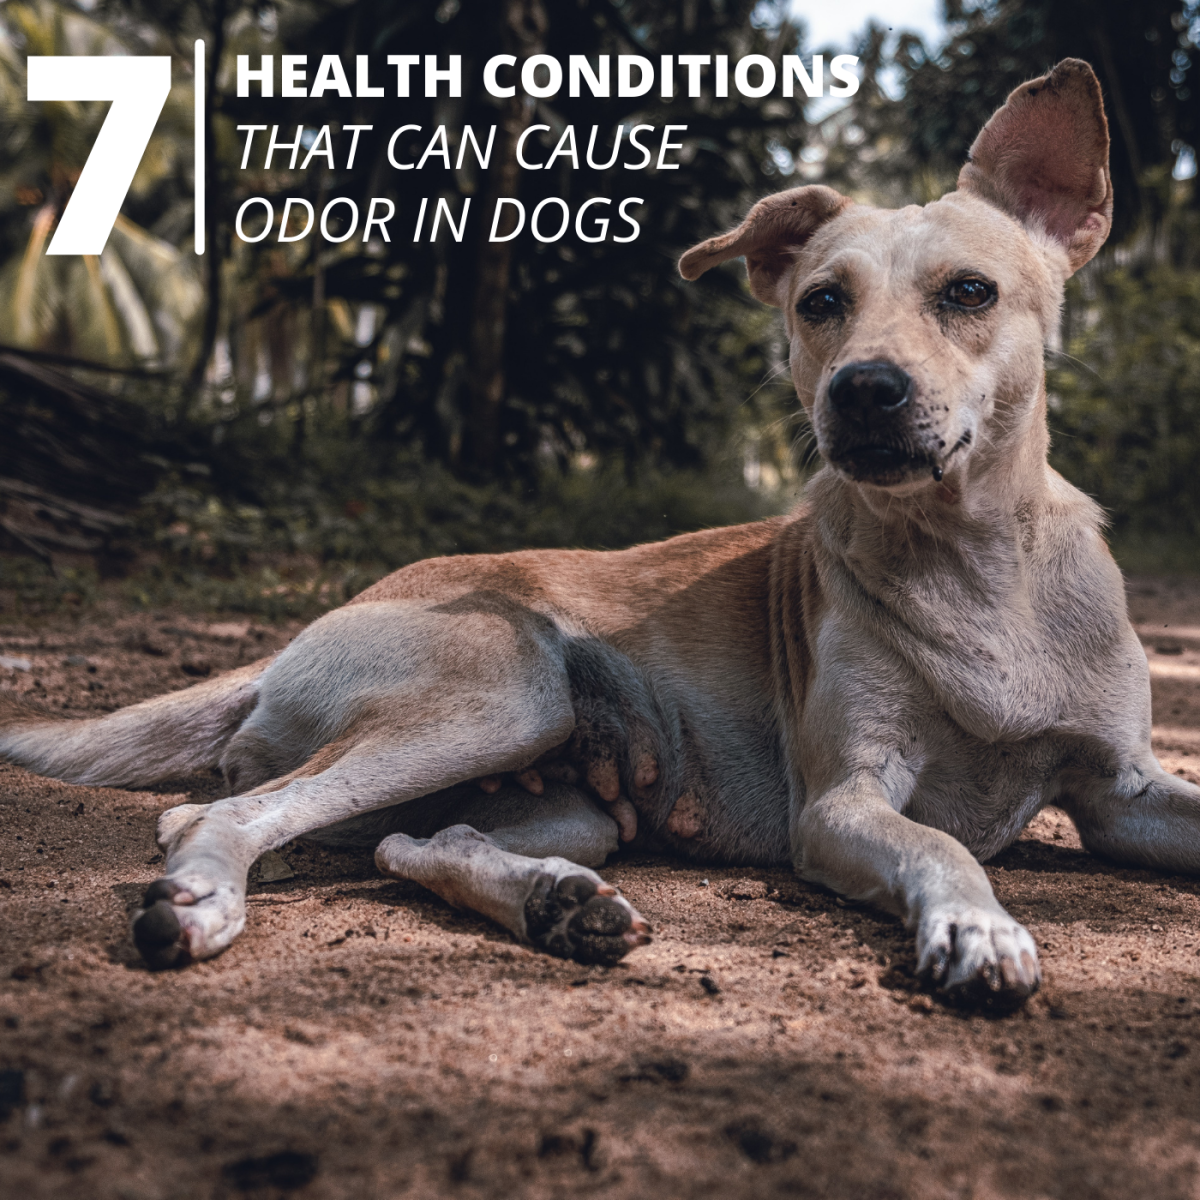 If your dog smells bad for no good reason, he may have an underlying health issue that needs to be addressed immediately.